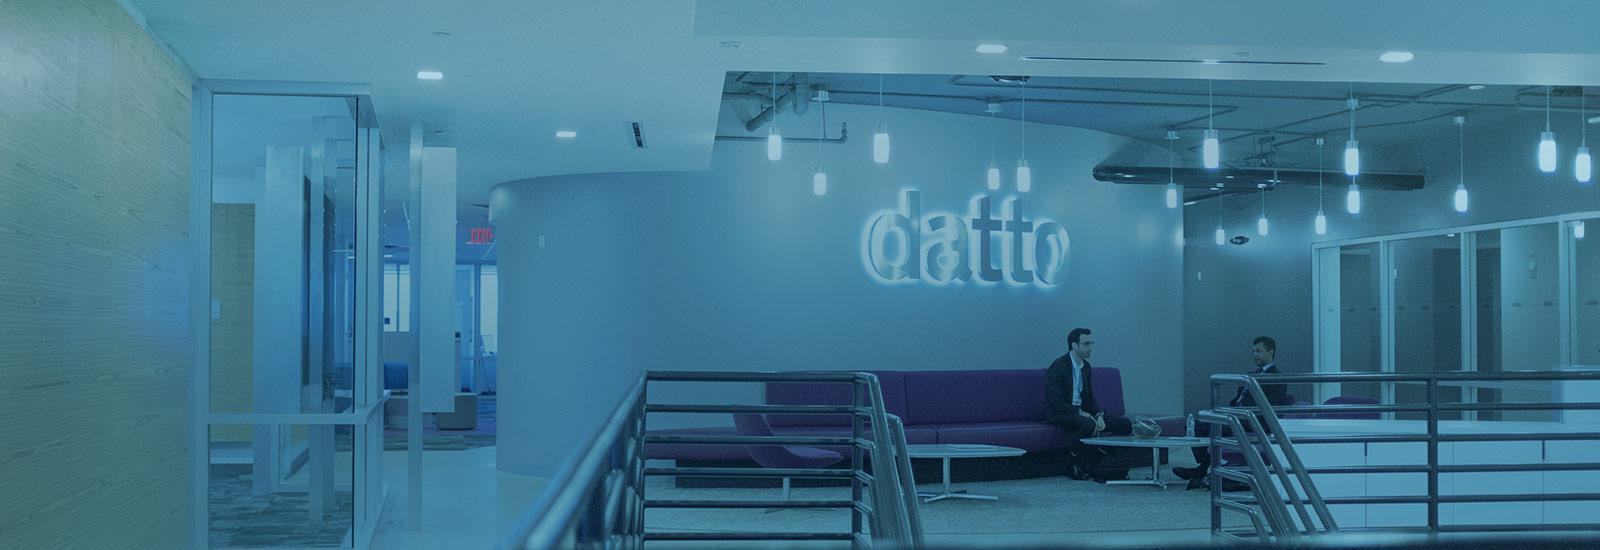 Datto, Inc. Data Center, PA USA